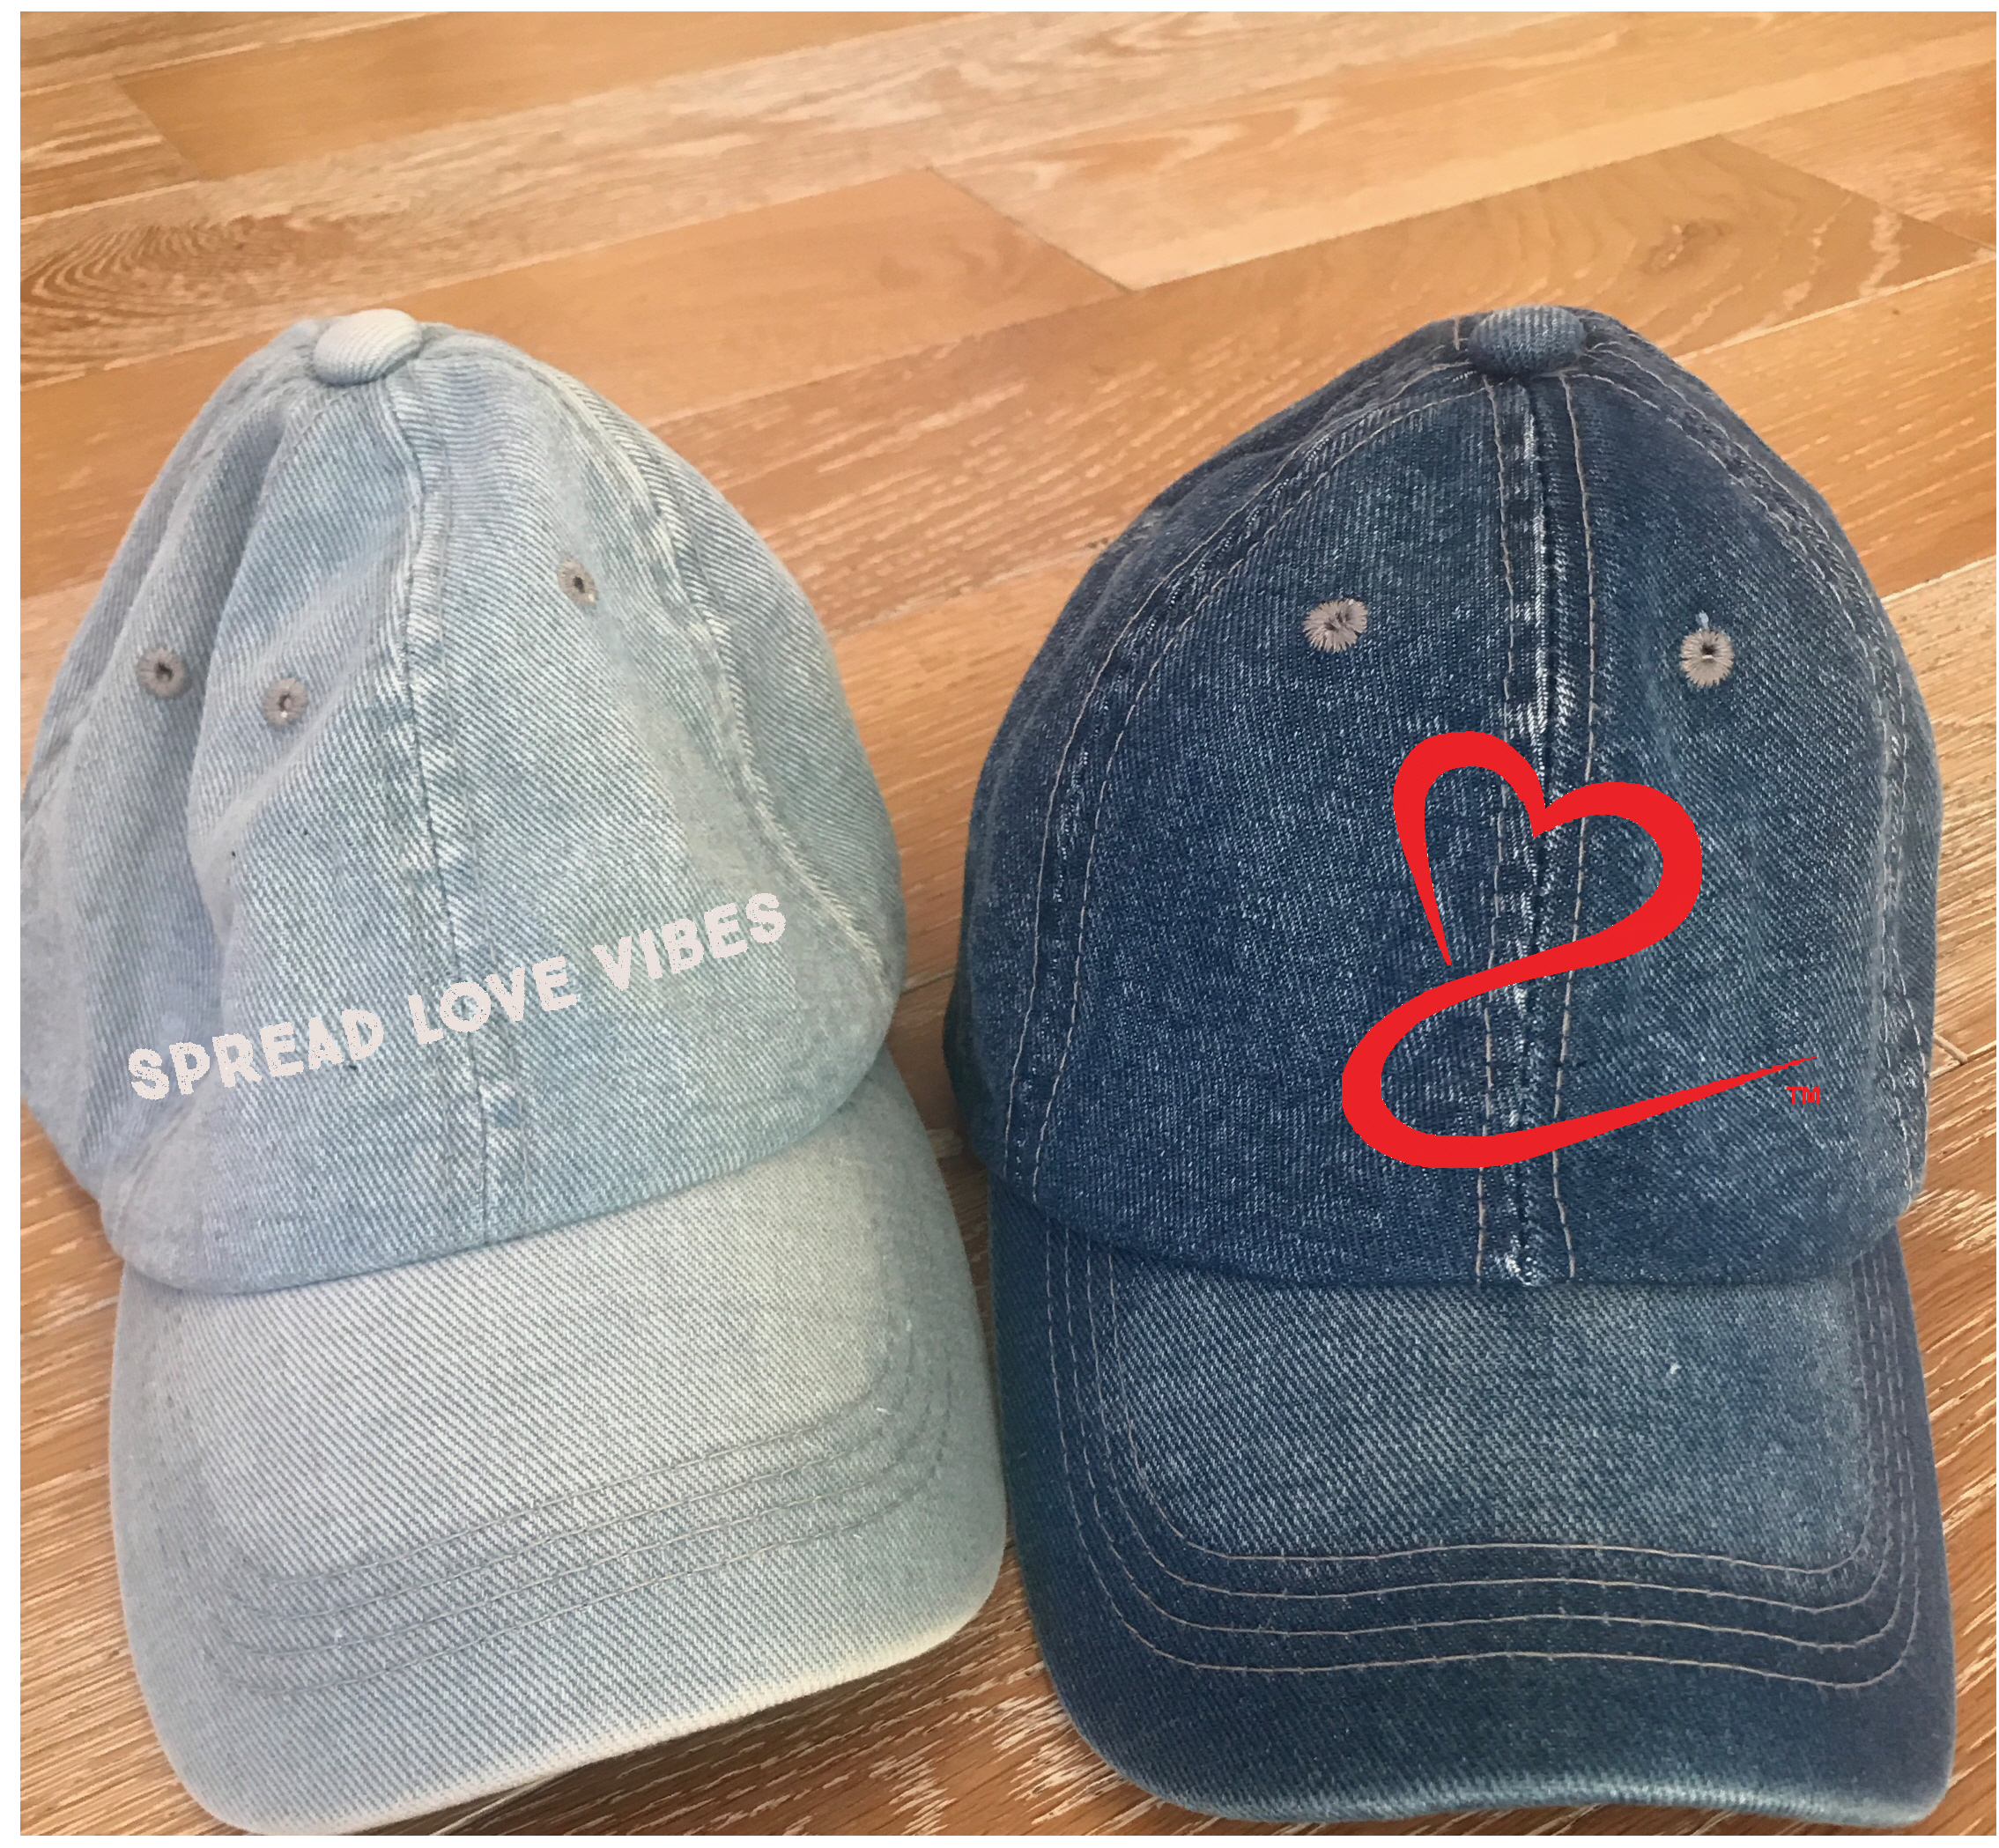 BB Caps_Denim.jpg